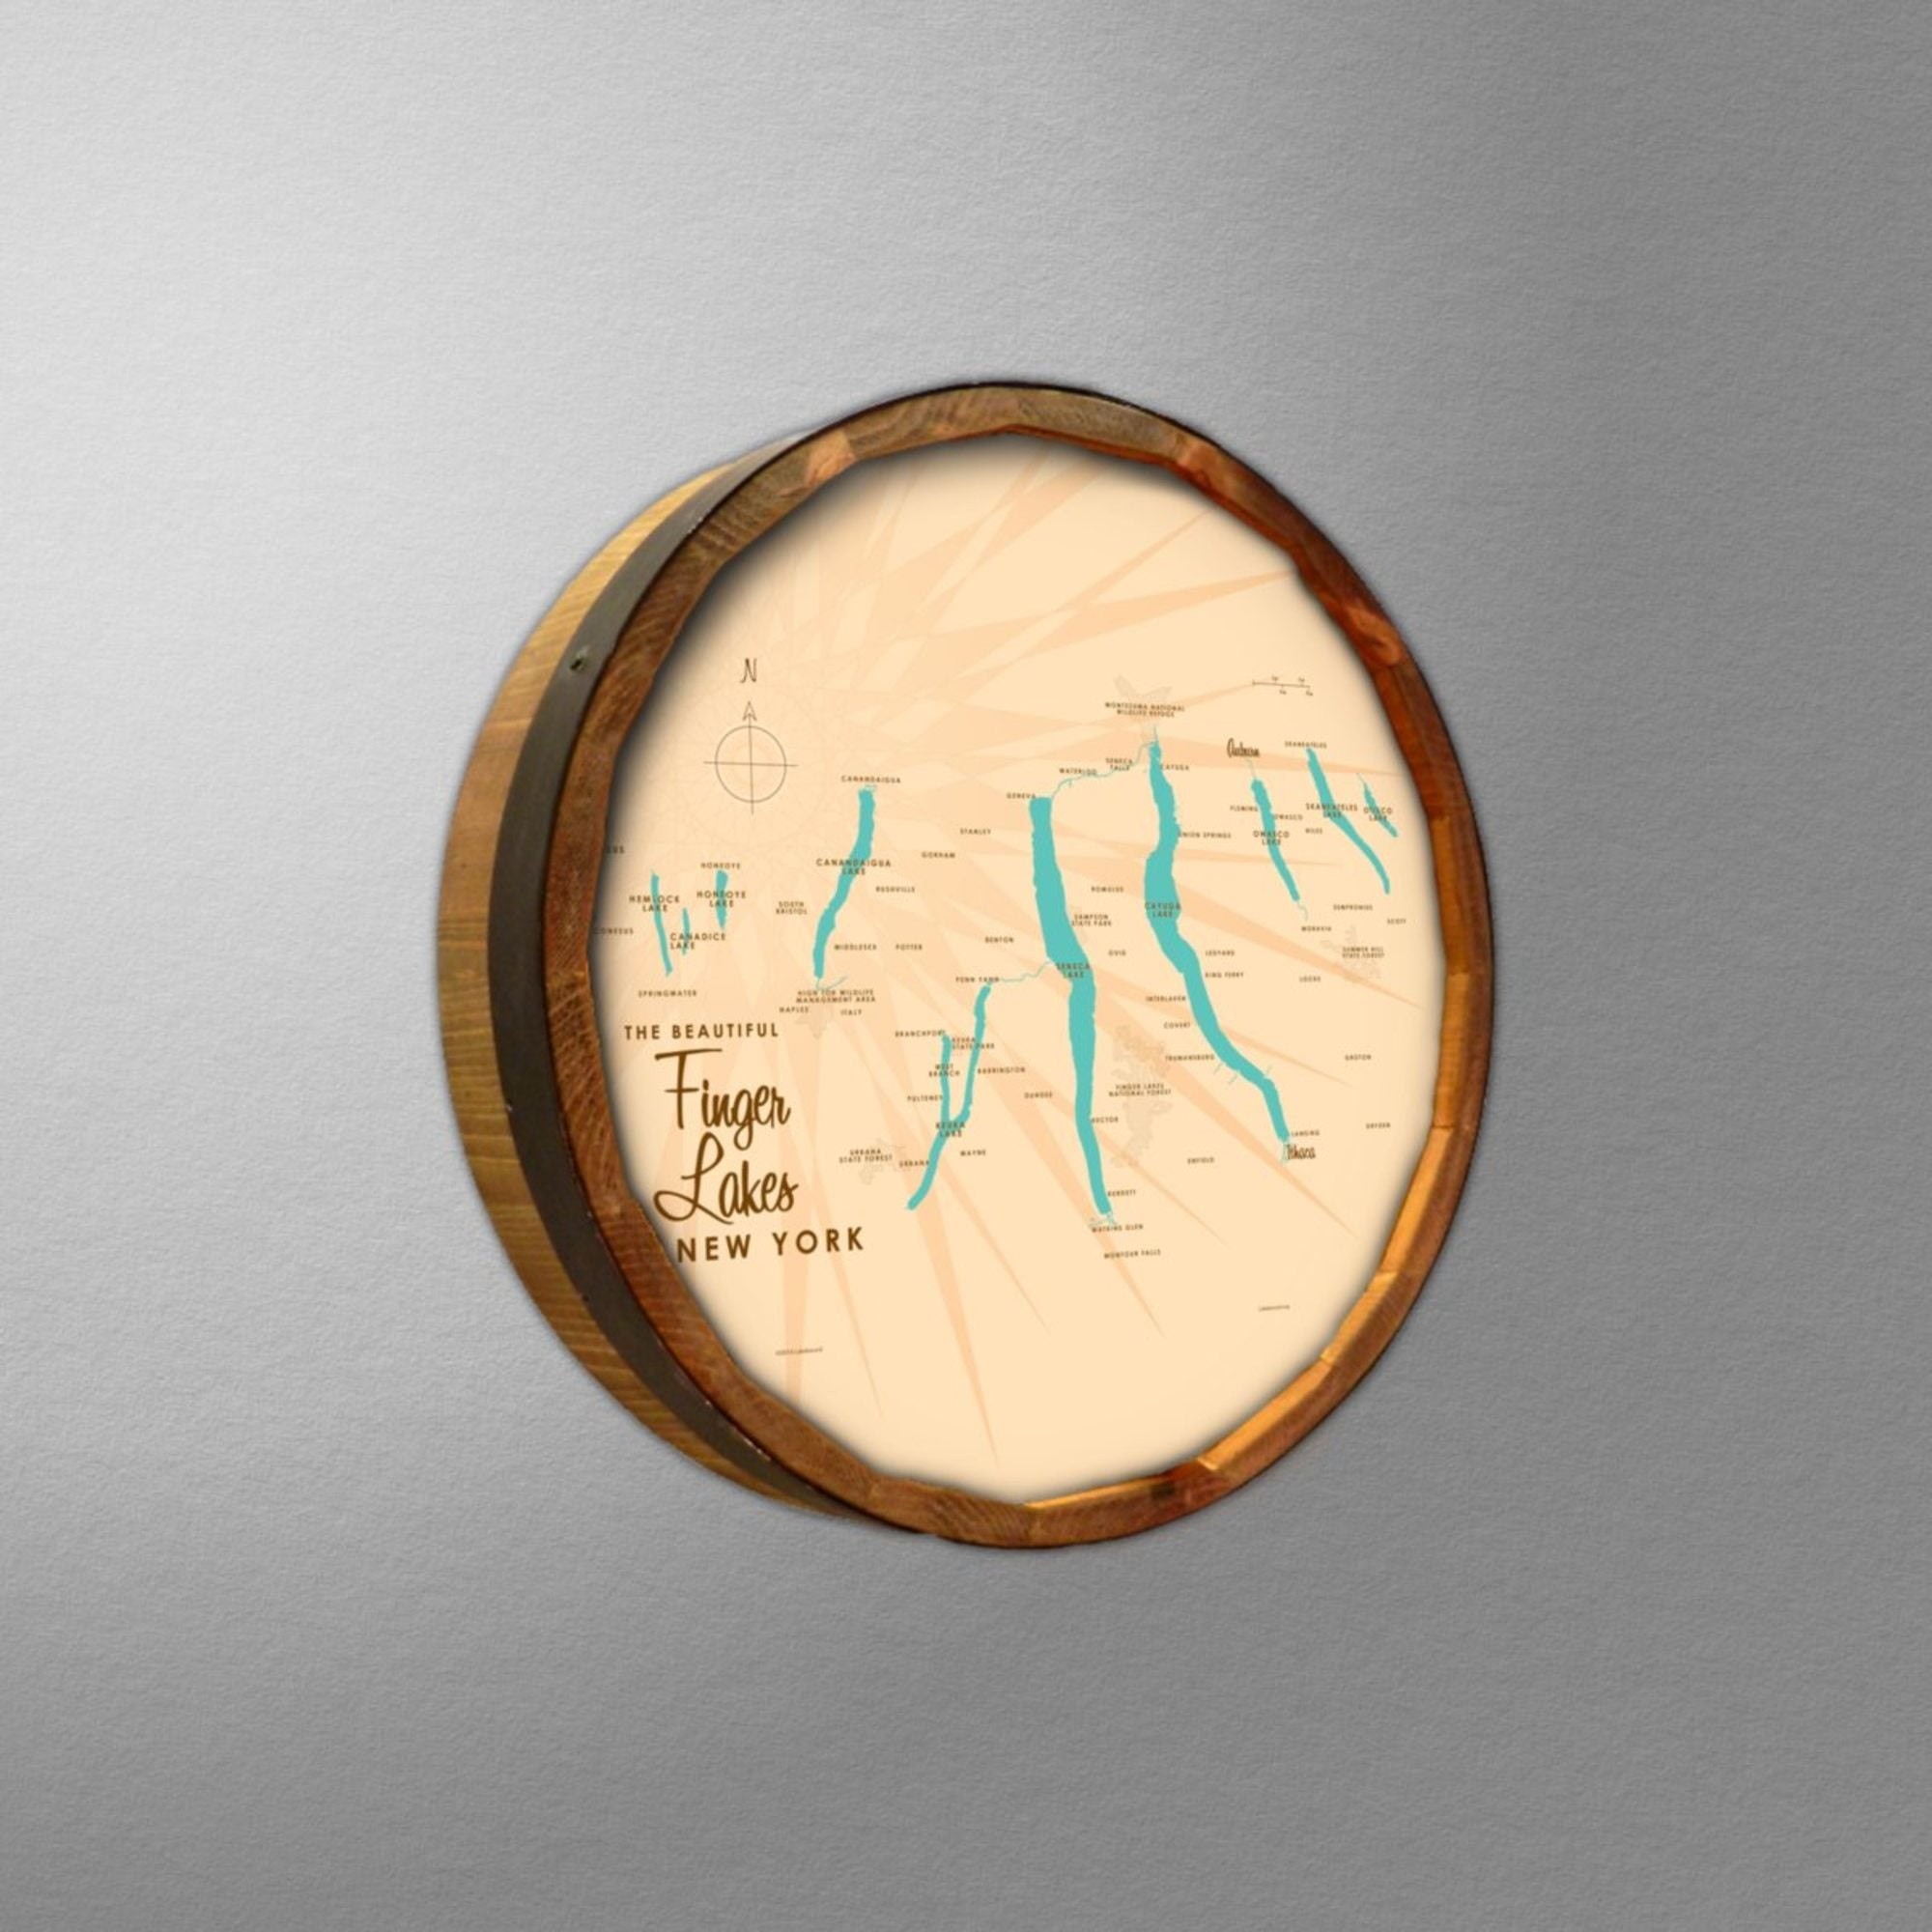 Finger Lakes New York, Barrel End Map Art